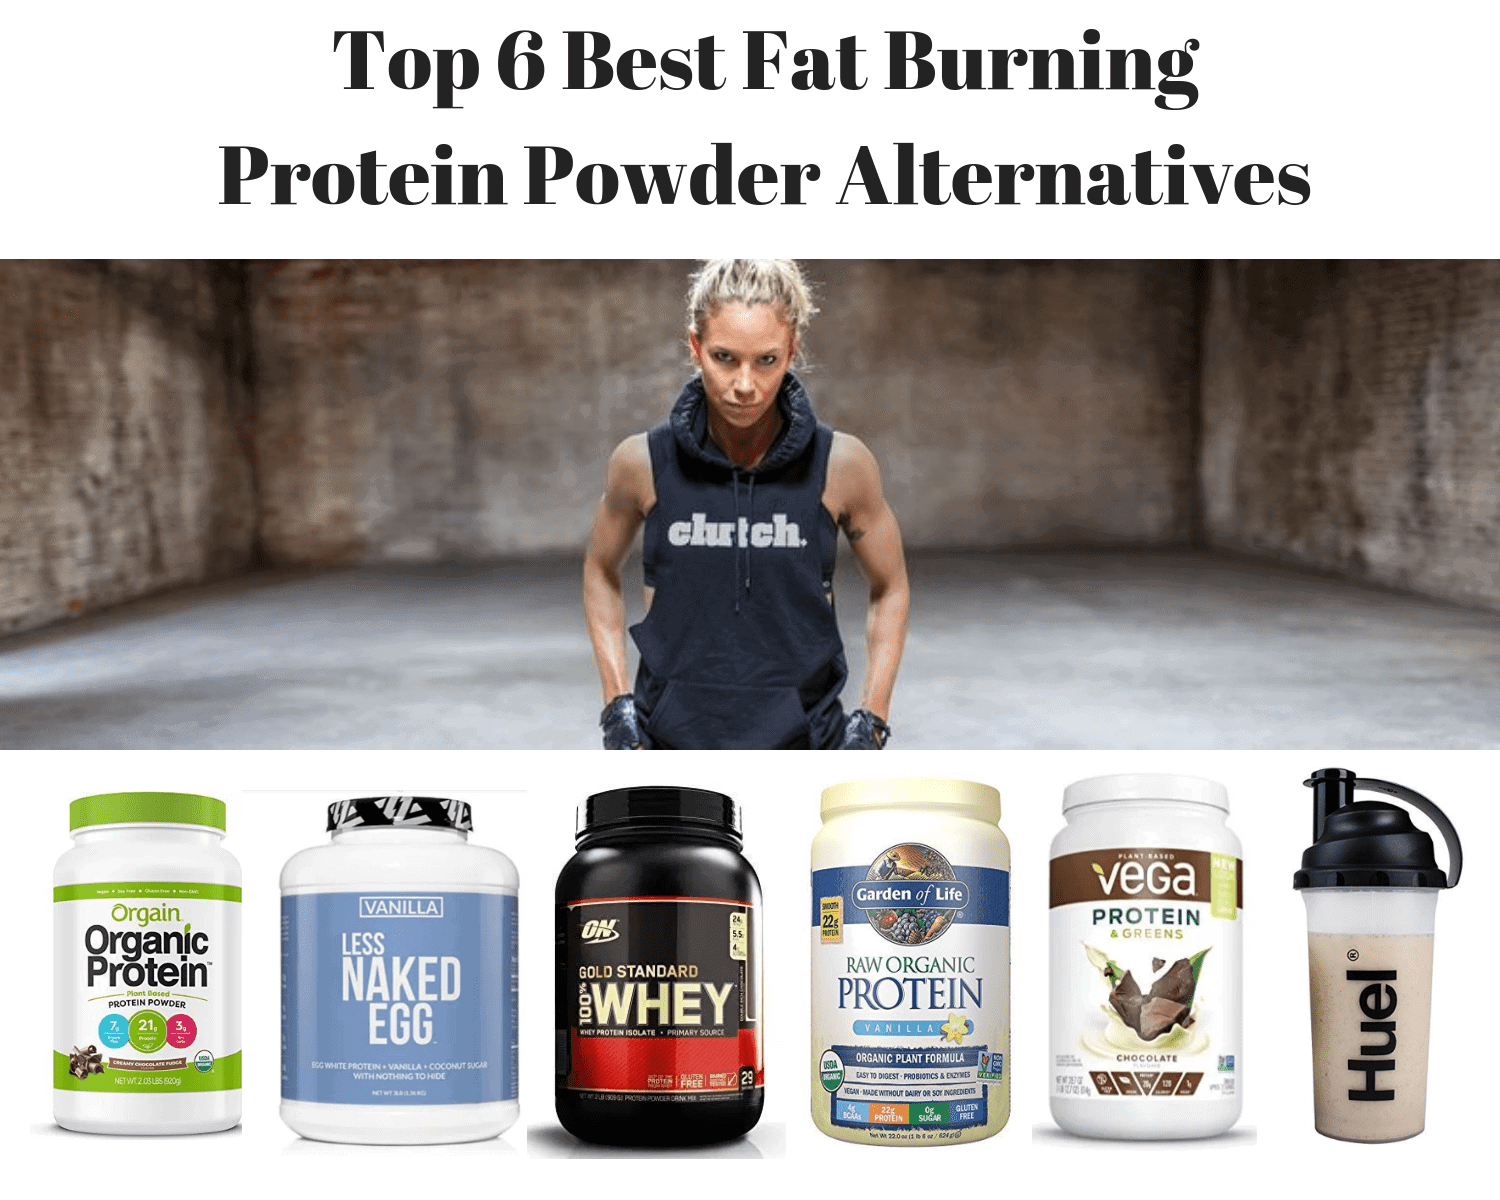 Top 6 Best Fat Burning Protein Powder Alternatives